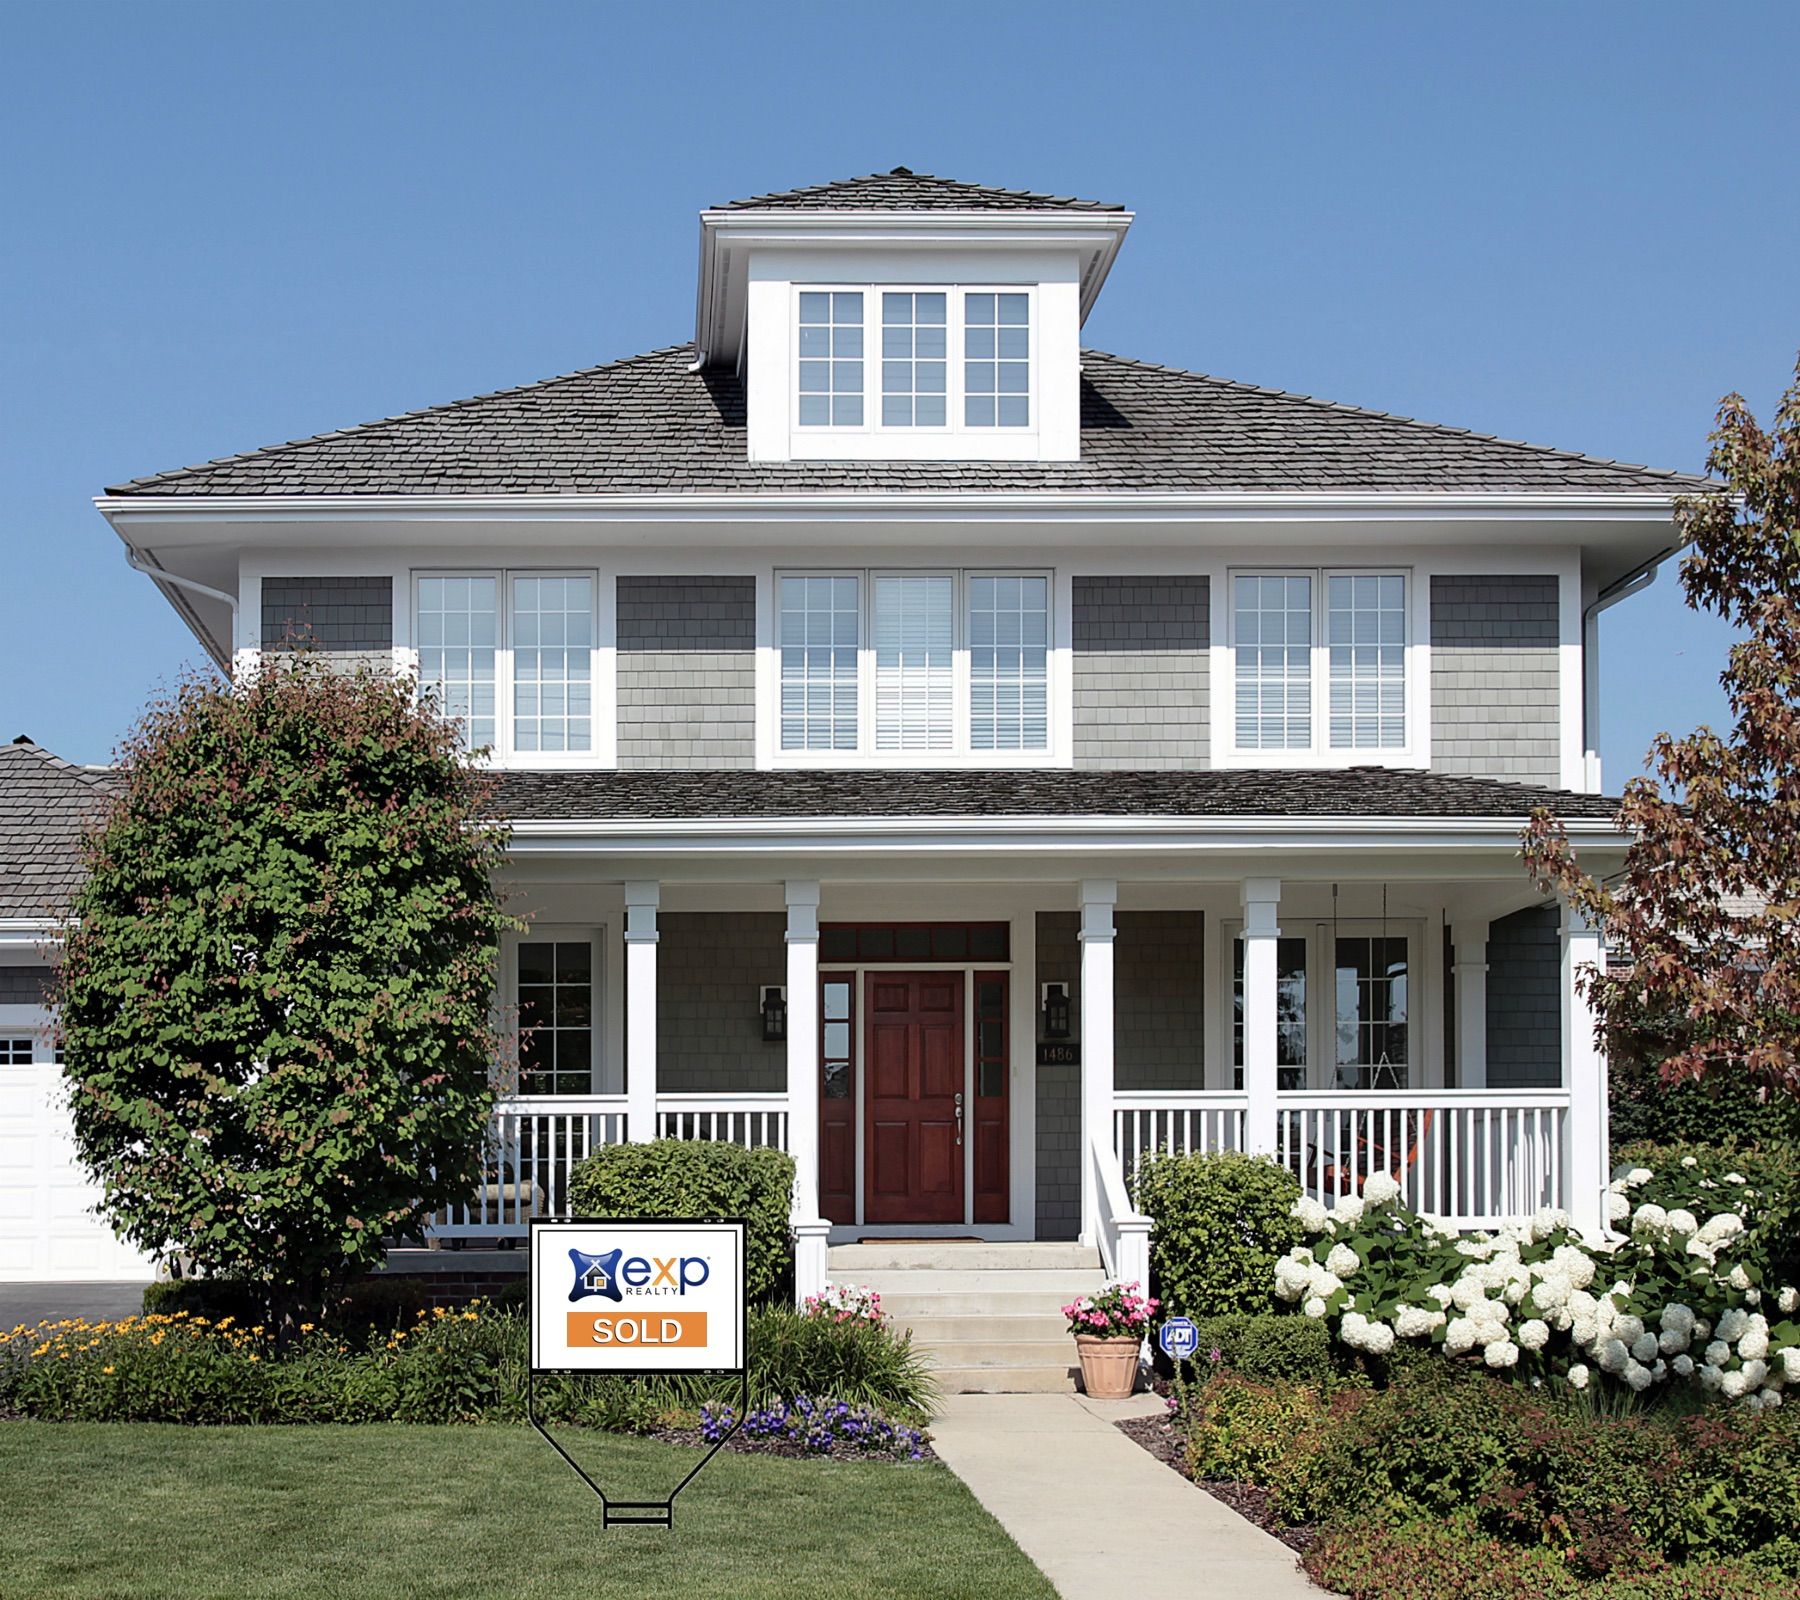 Gray craftsman house with eXp sold sign